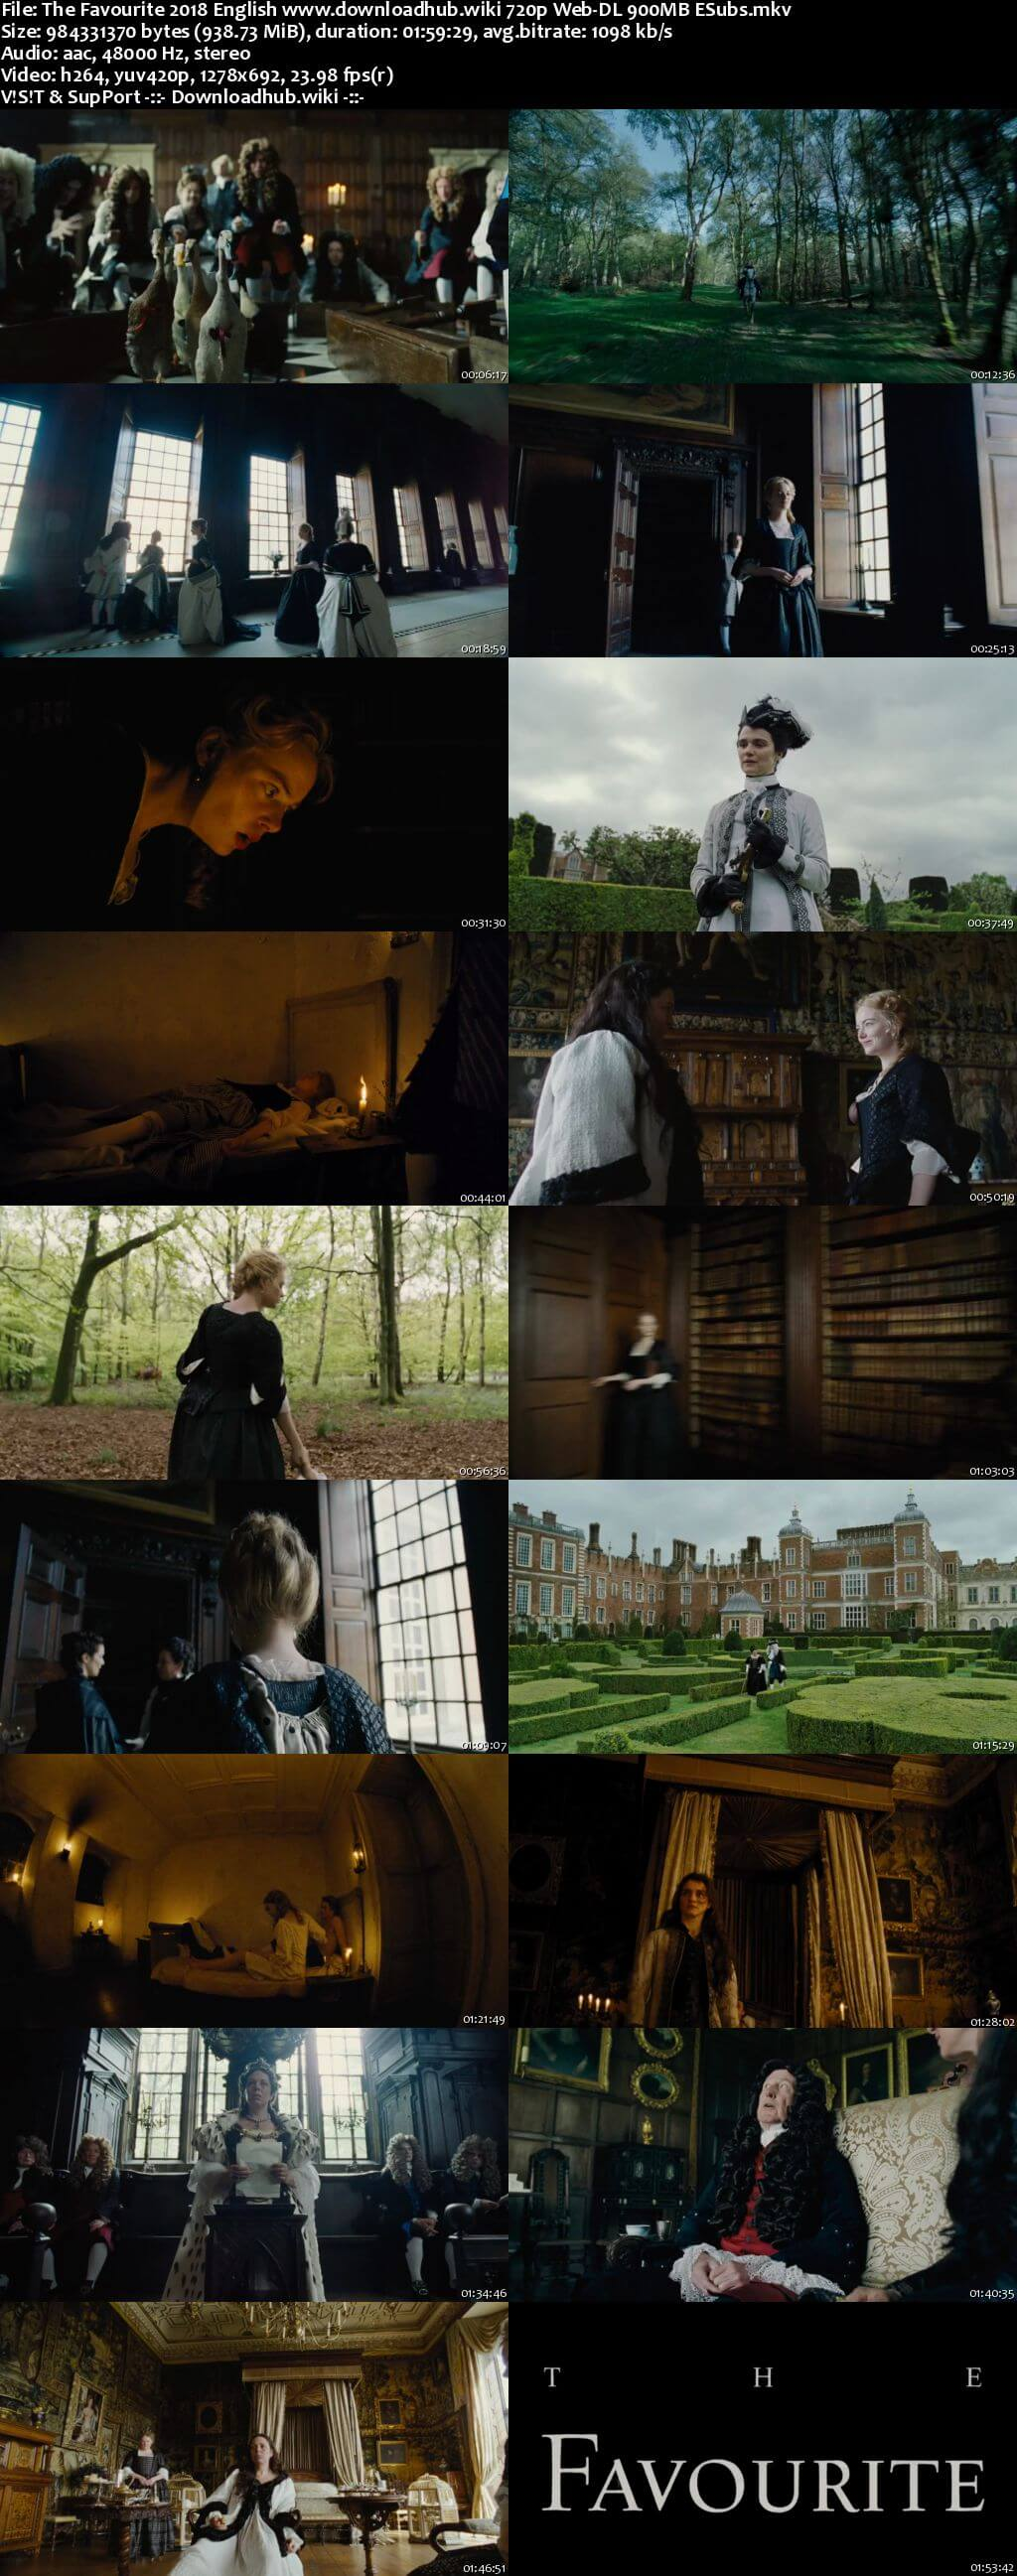 The Favourite 2018 English 720p Web-DL 900MB ESubs